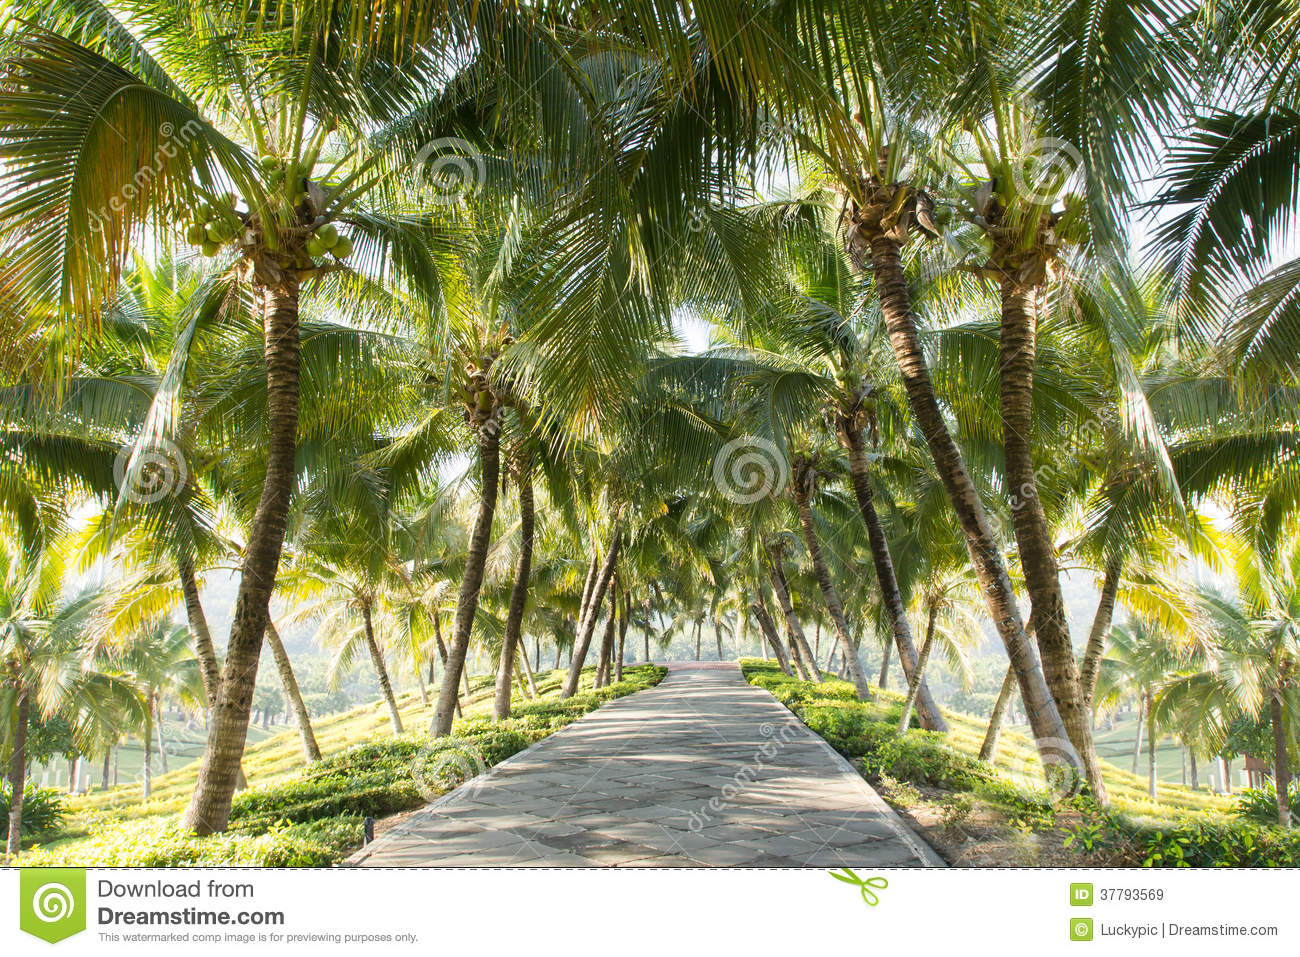 walkway with coconut tree in the garden stock image image of path road 37793569. Black Bedroom Furniture Sets. Home Design Ideas